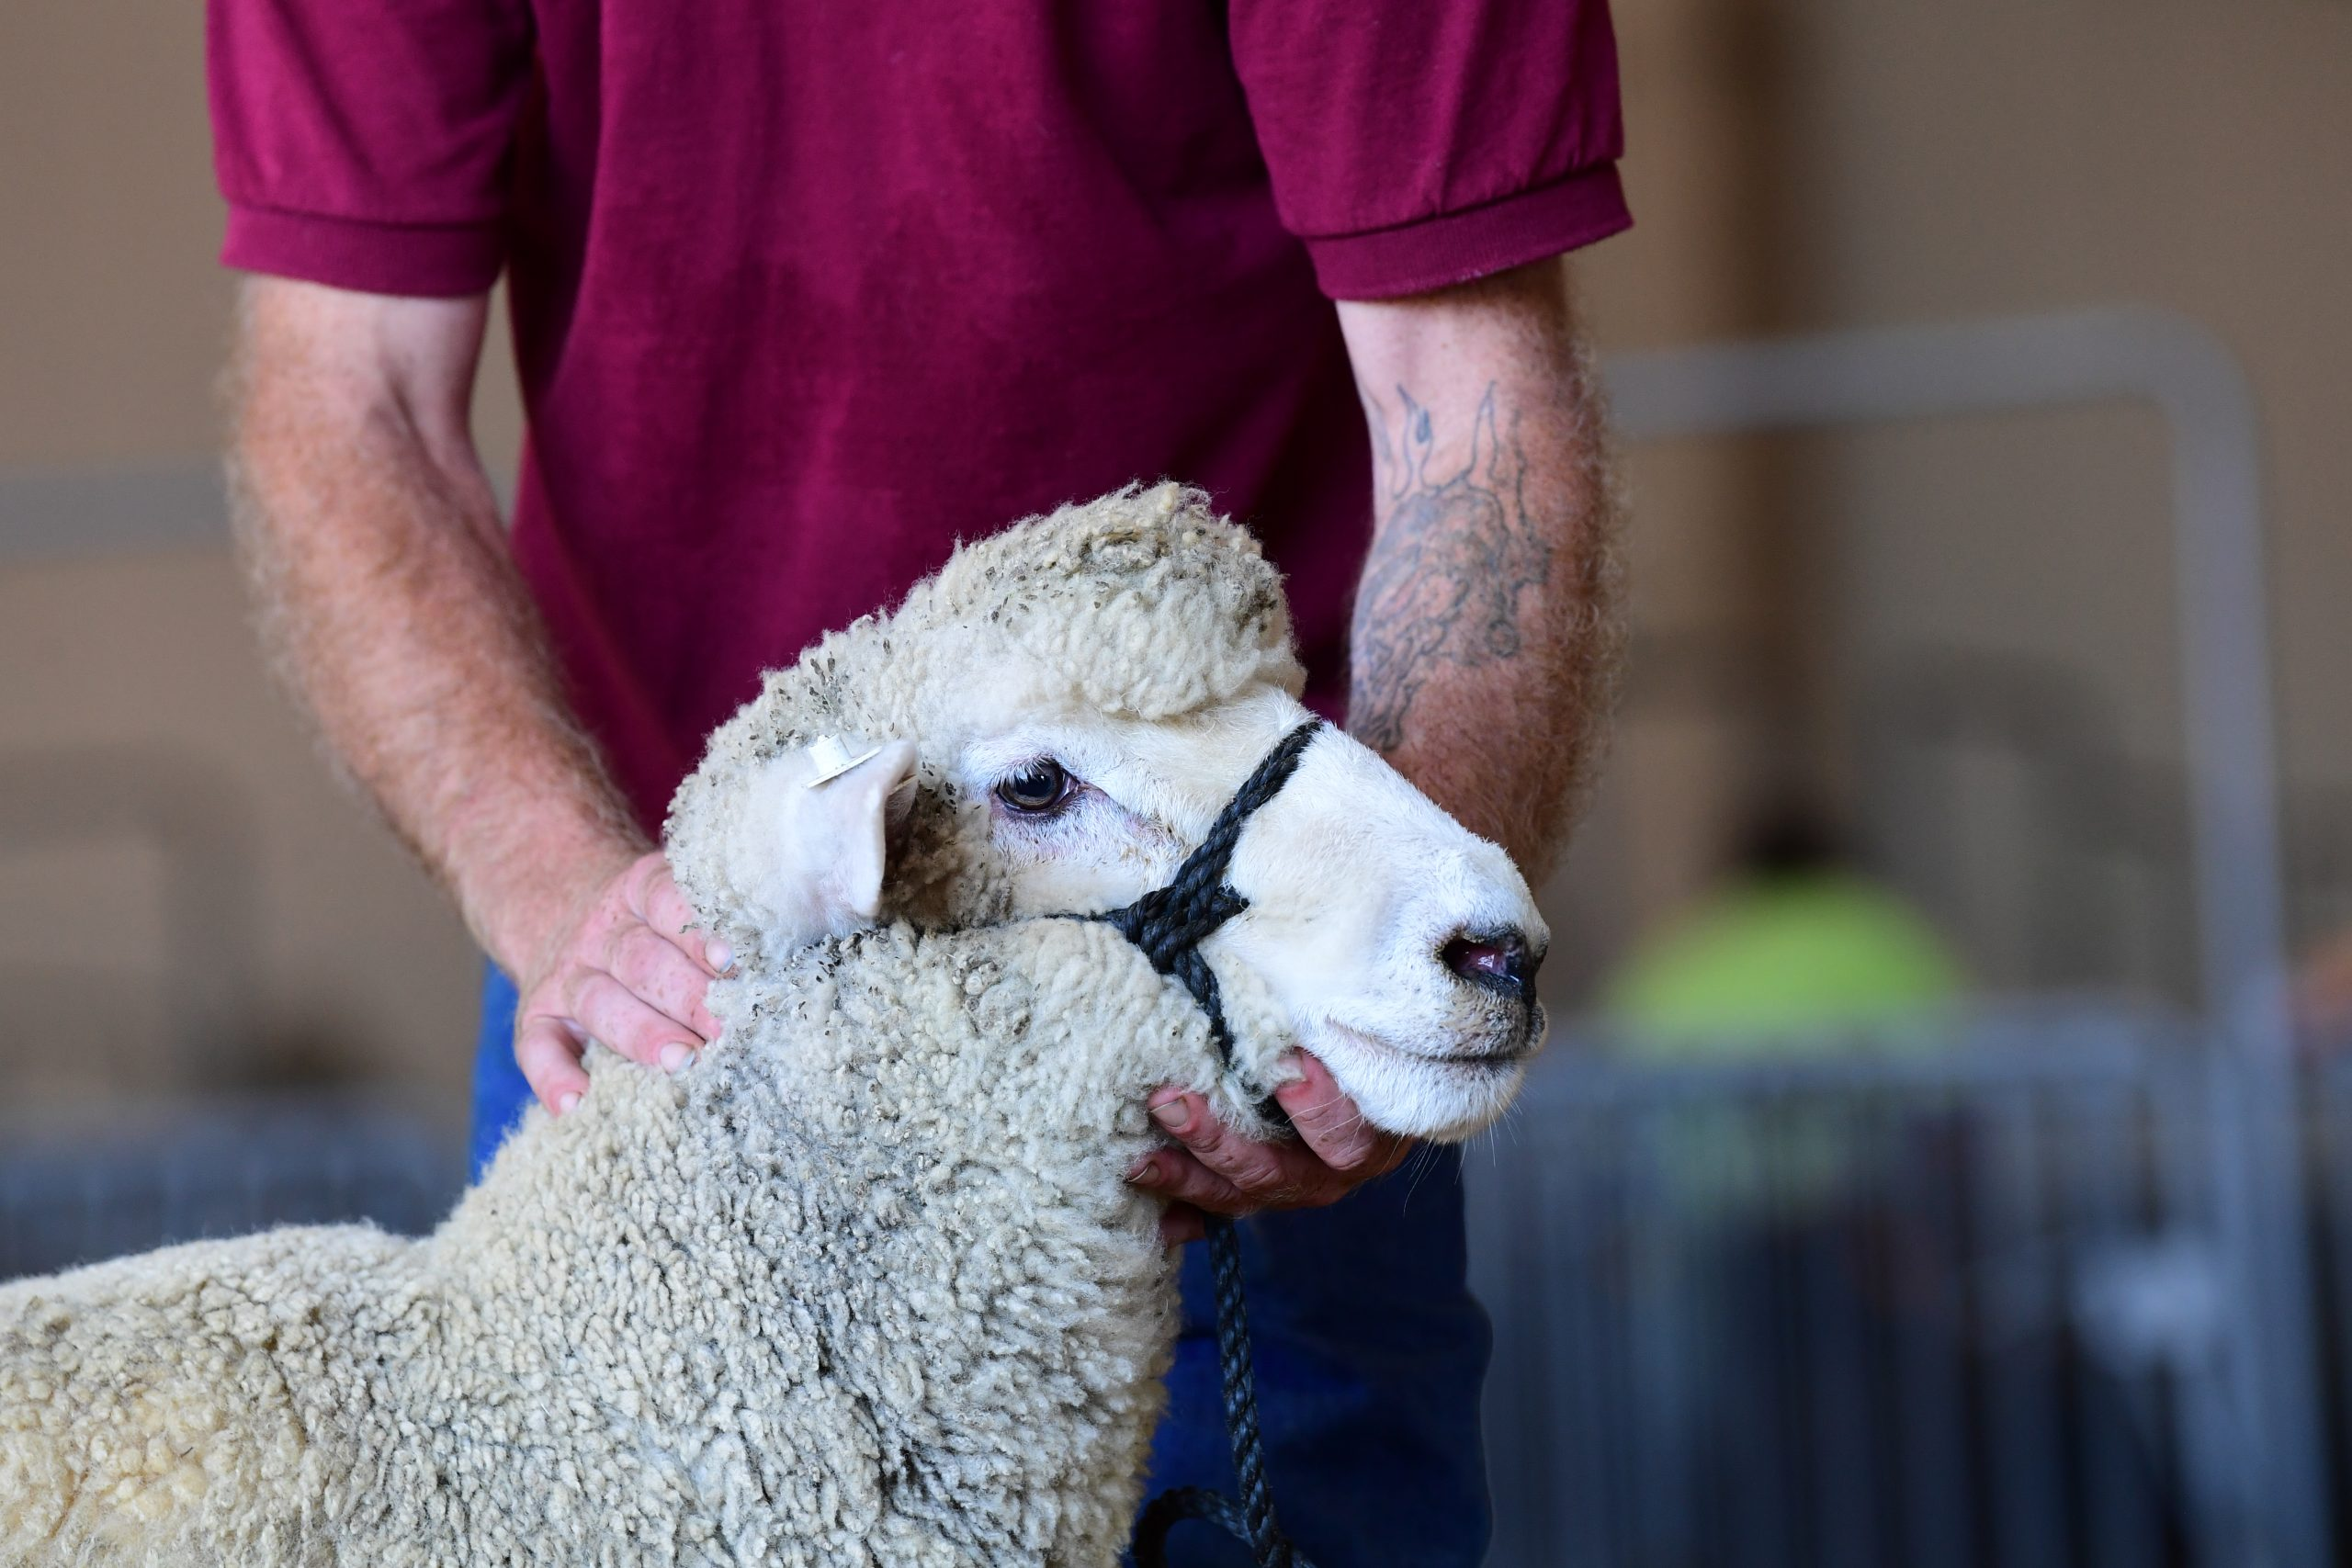 Sheep being held by a person